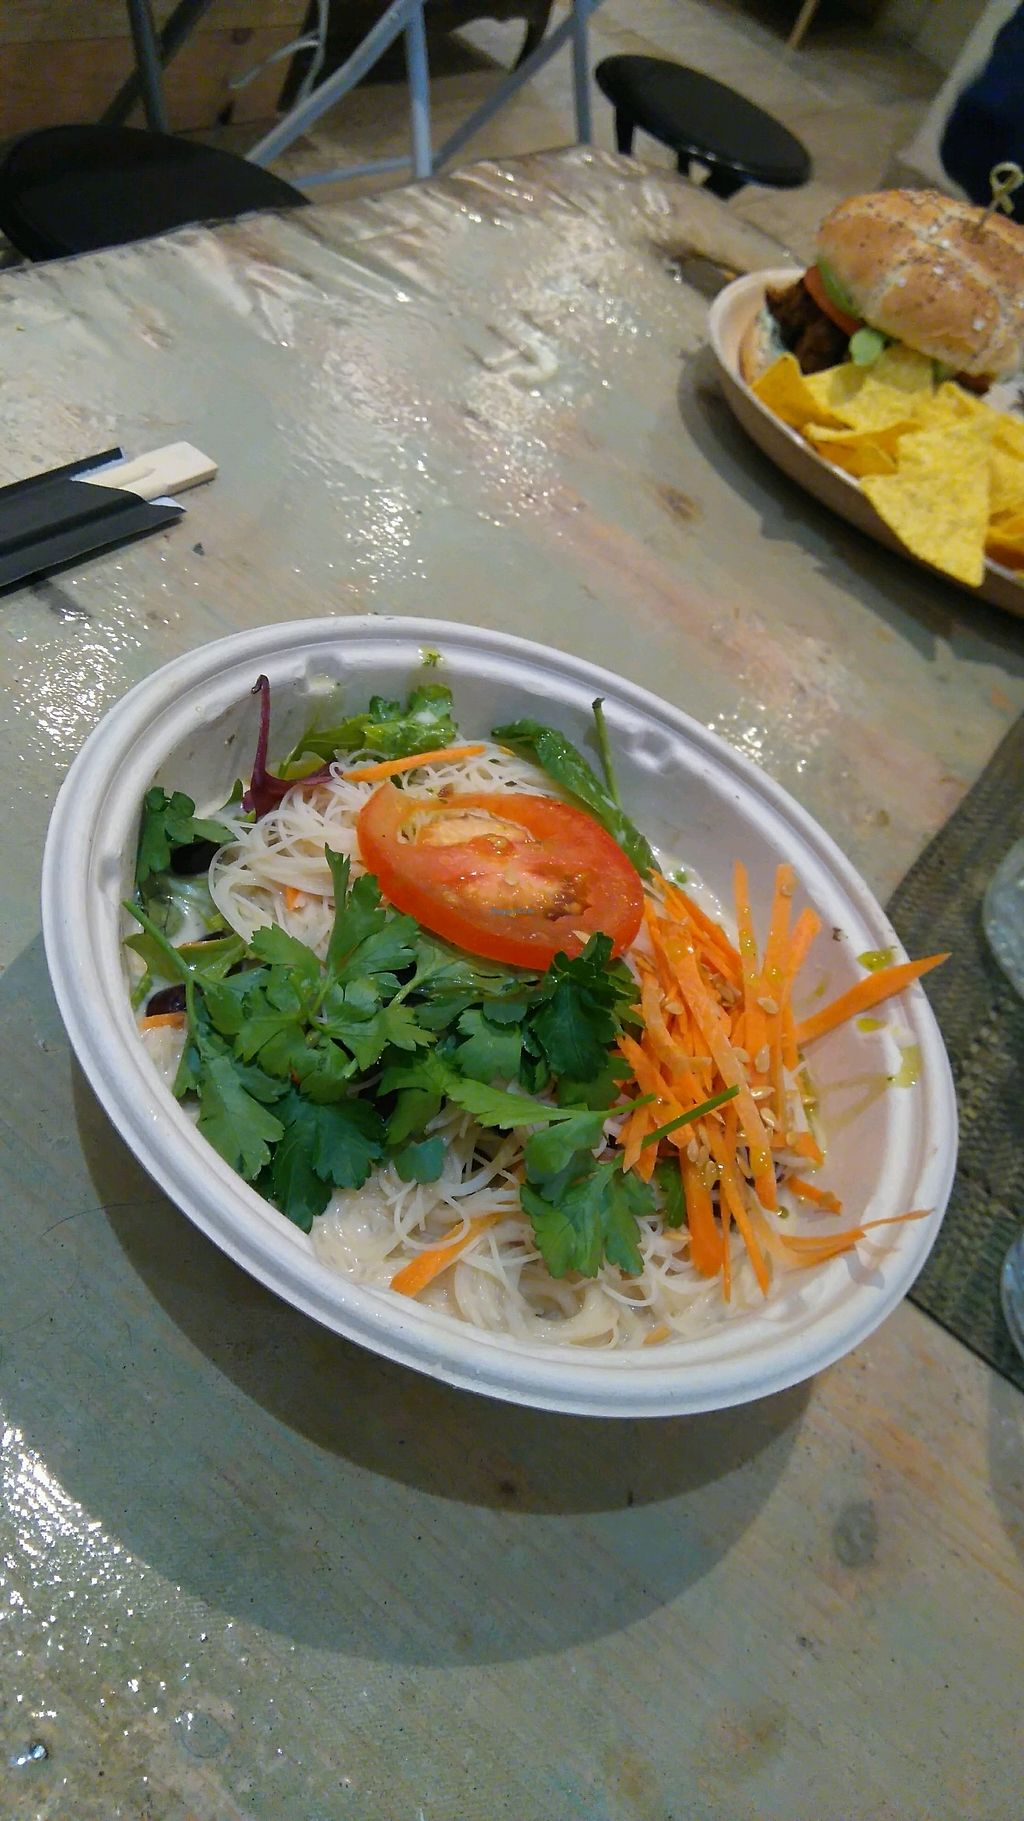 """Photo of Graze  by <a href=""""/members/profile/Angereb"""">Angereb</a> <br/>Coconut ramen with pinto beans <br/> March 13, 2018  - <a href='/contact/abuse/image/86499/370171'>Report</a>"""